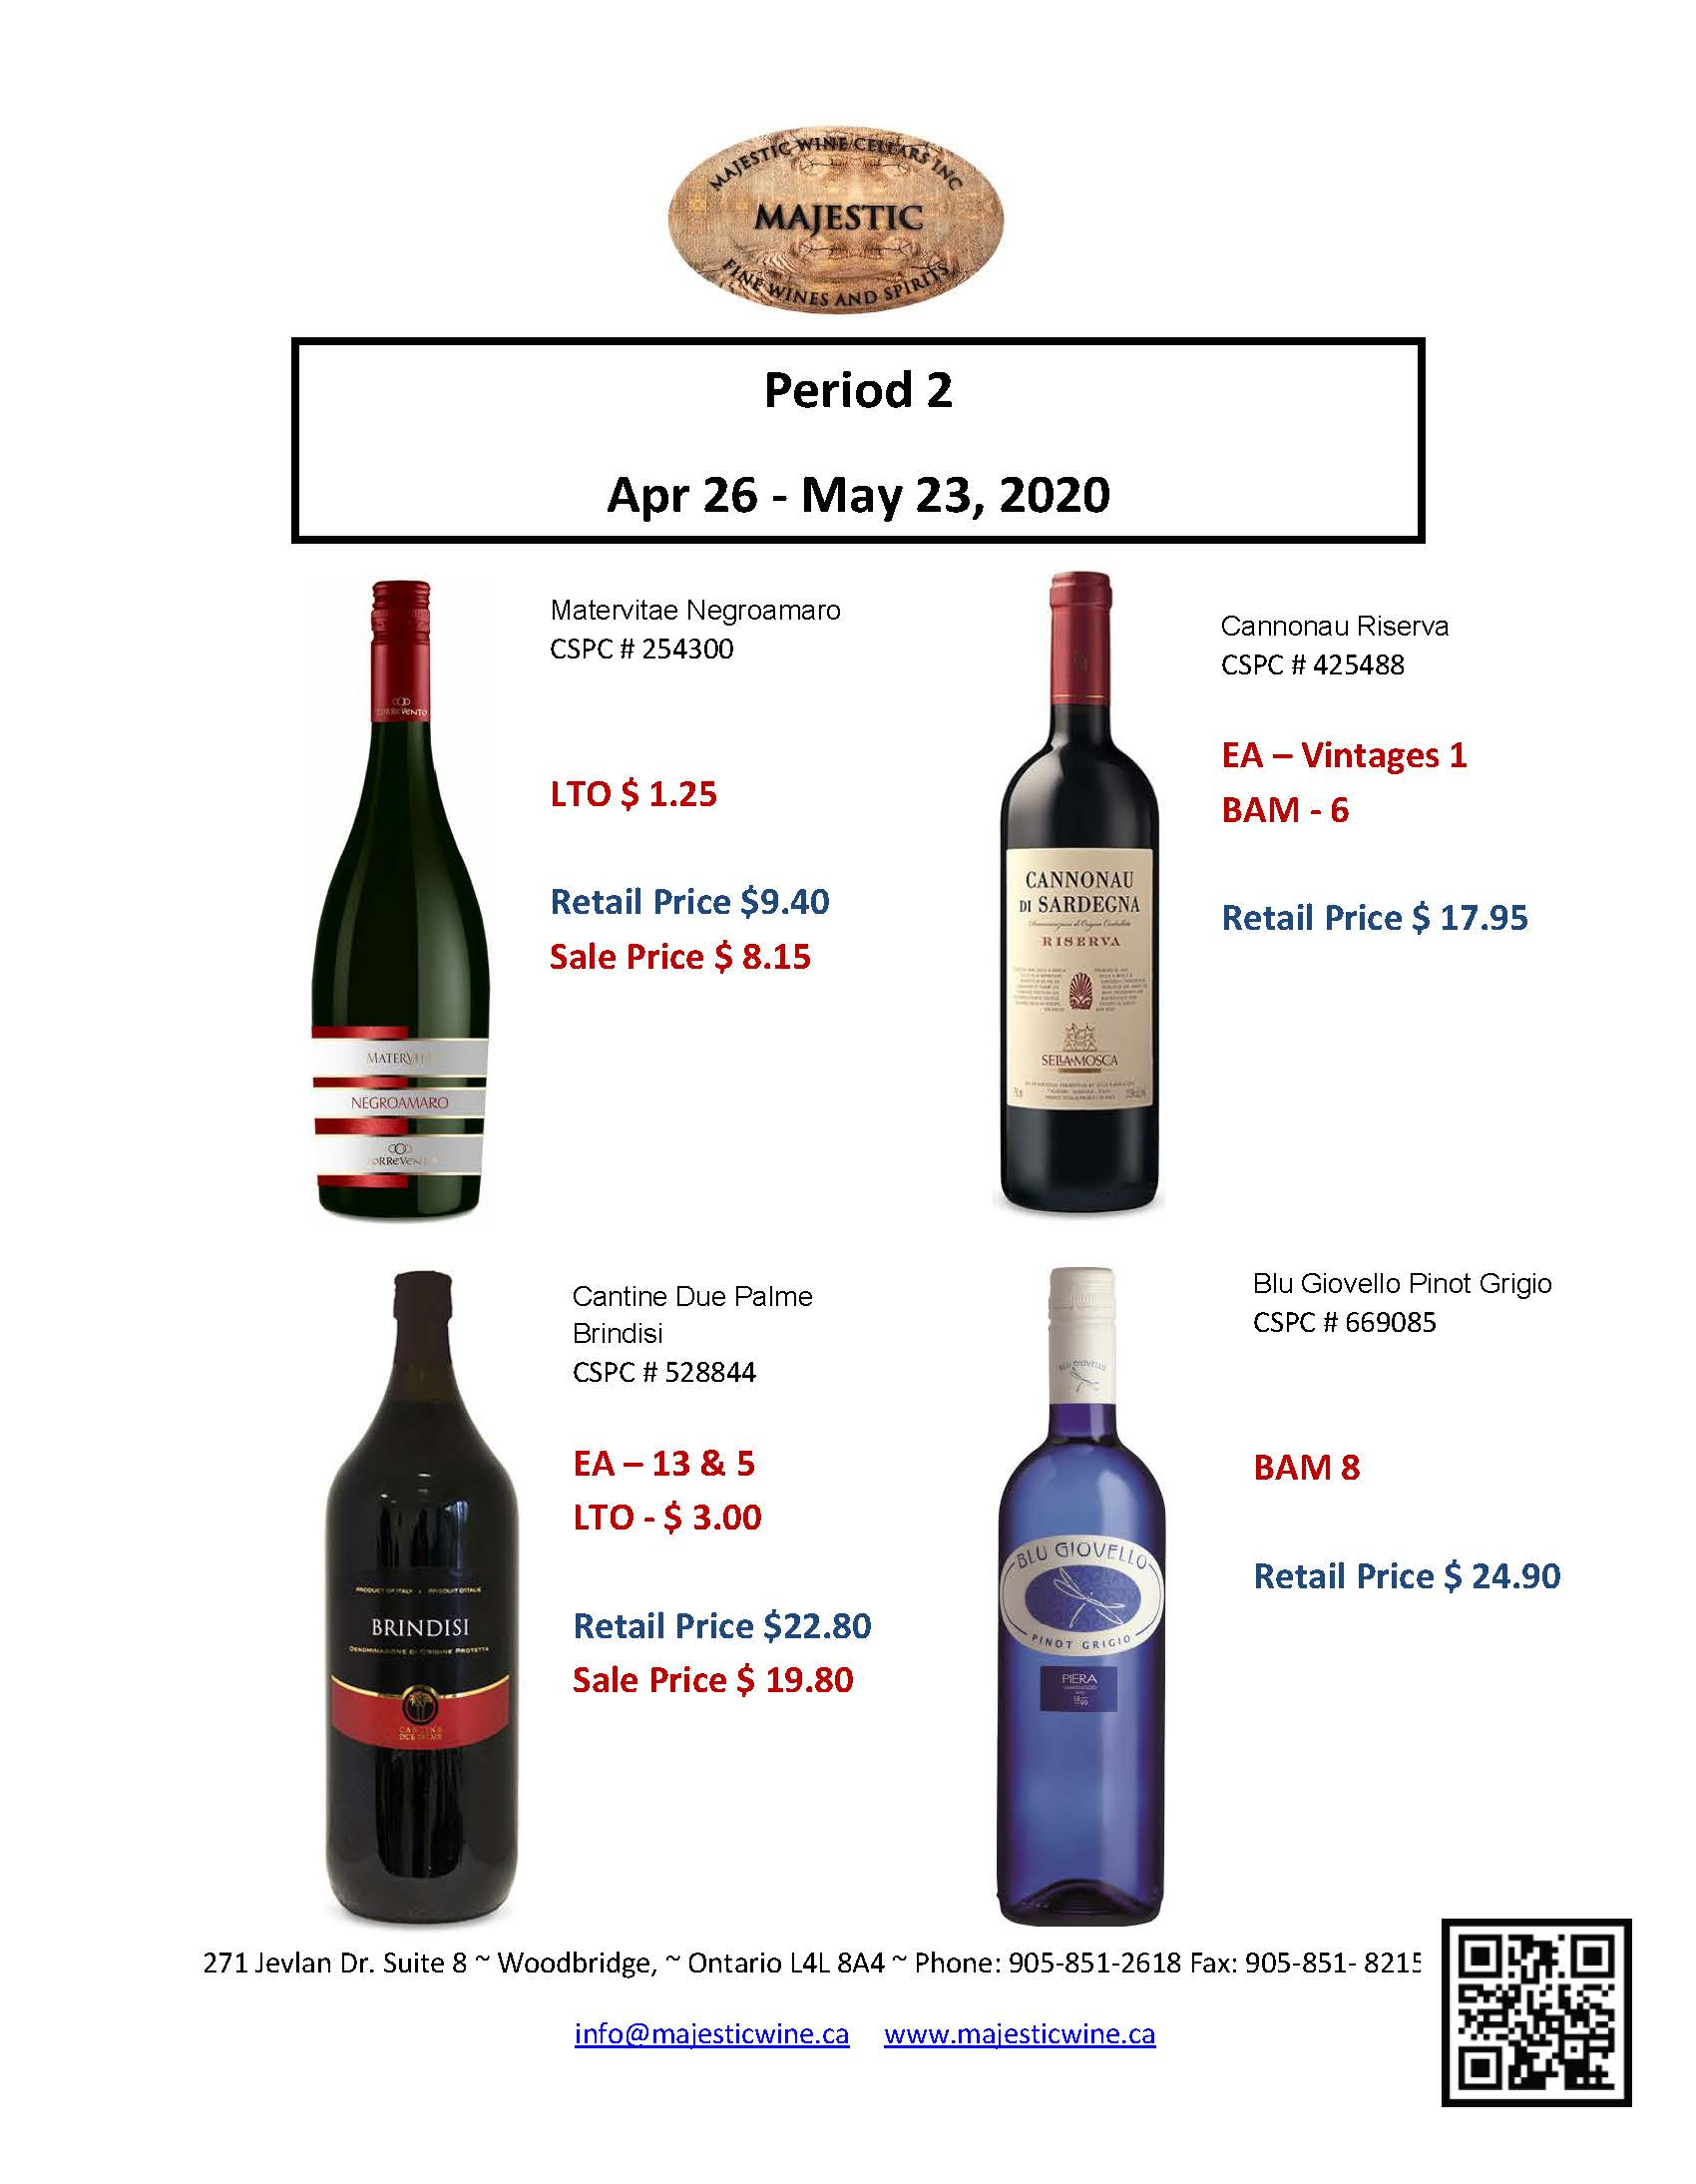 Period 2 | April 26th - May 23rd Promotion